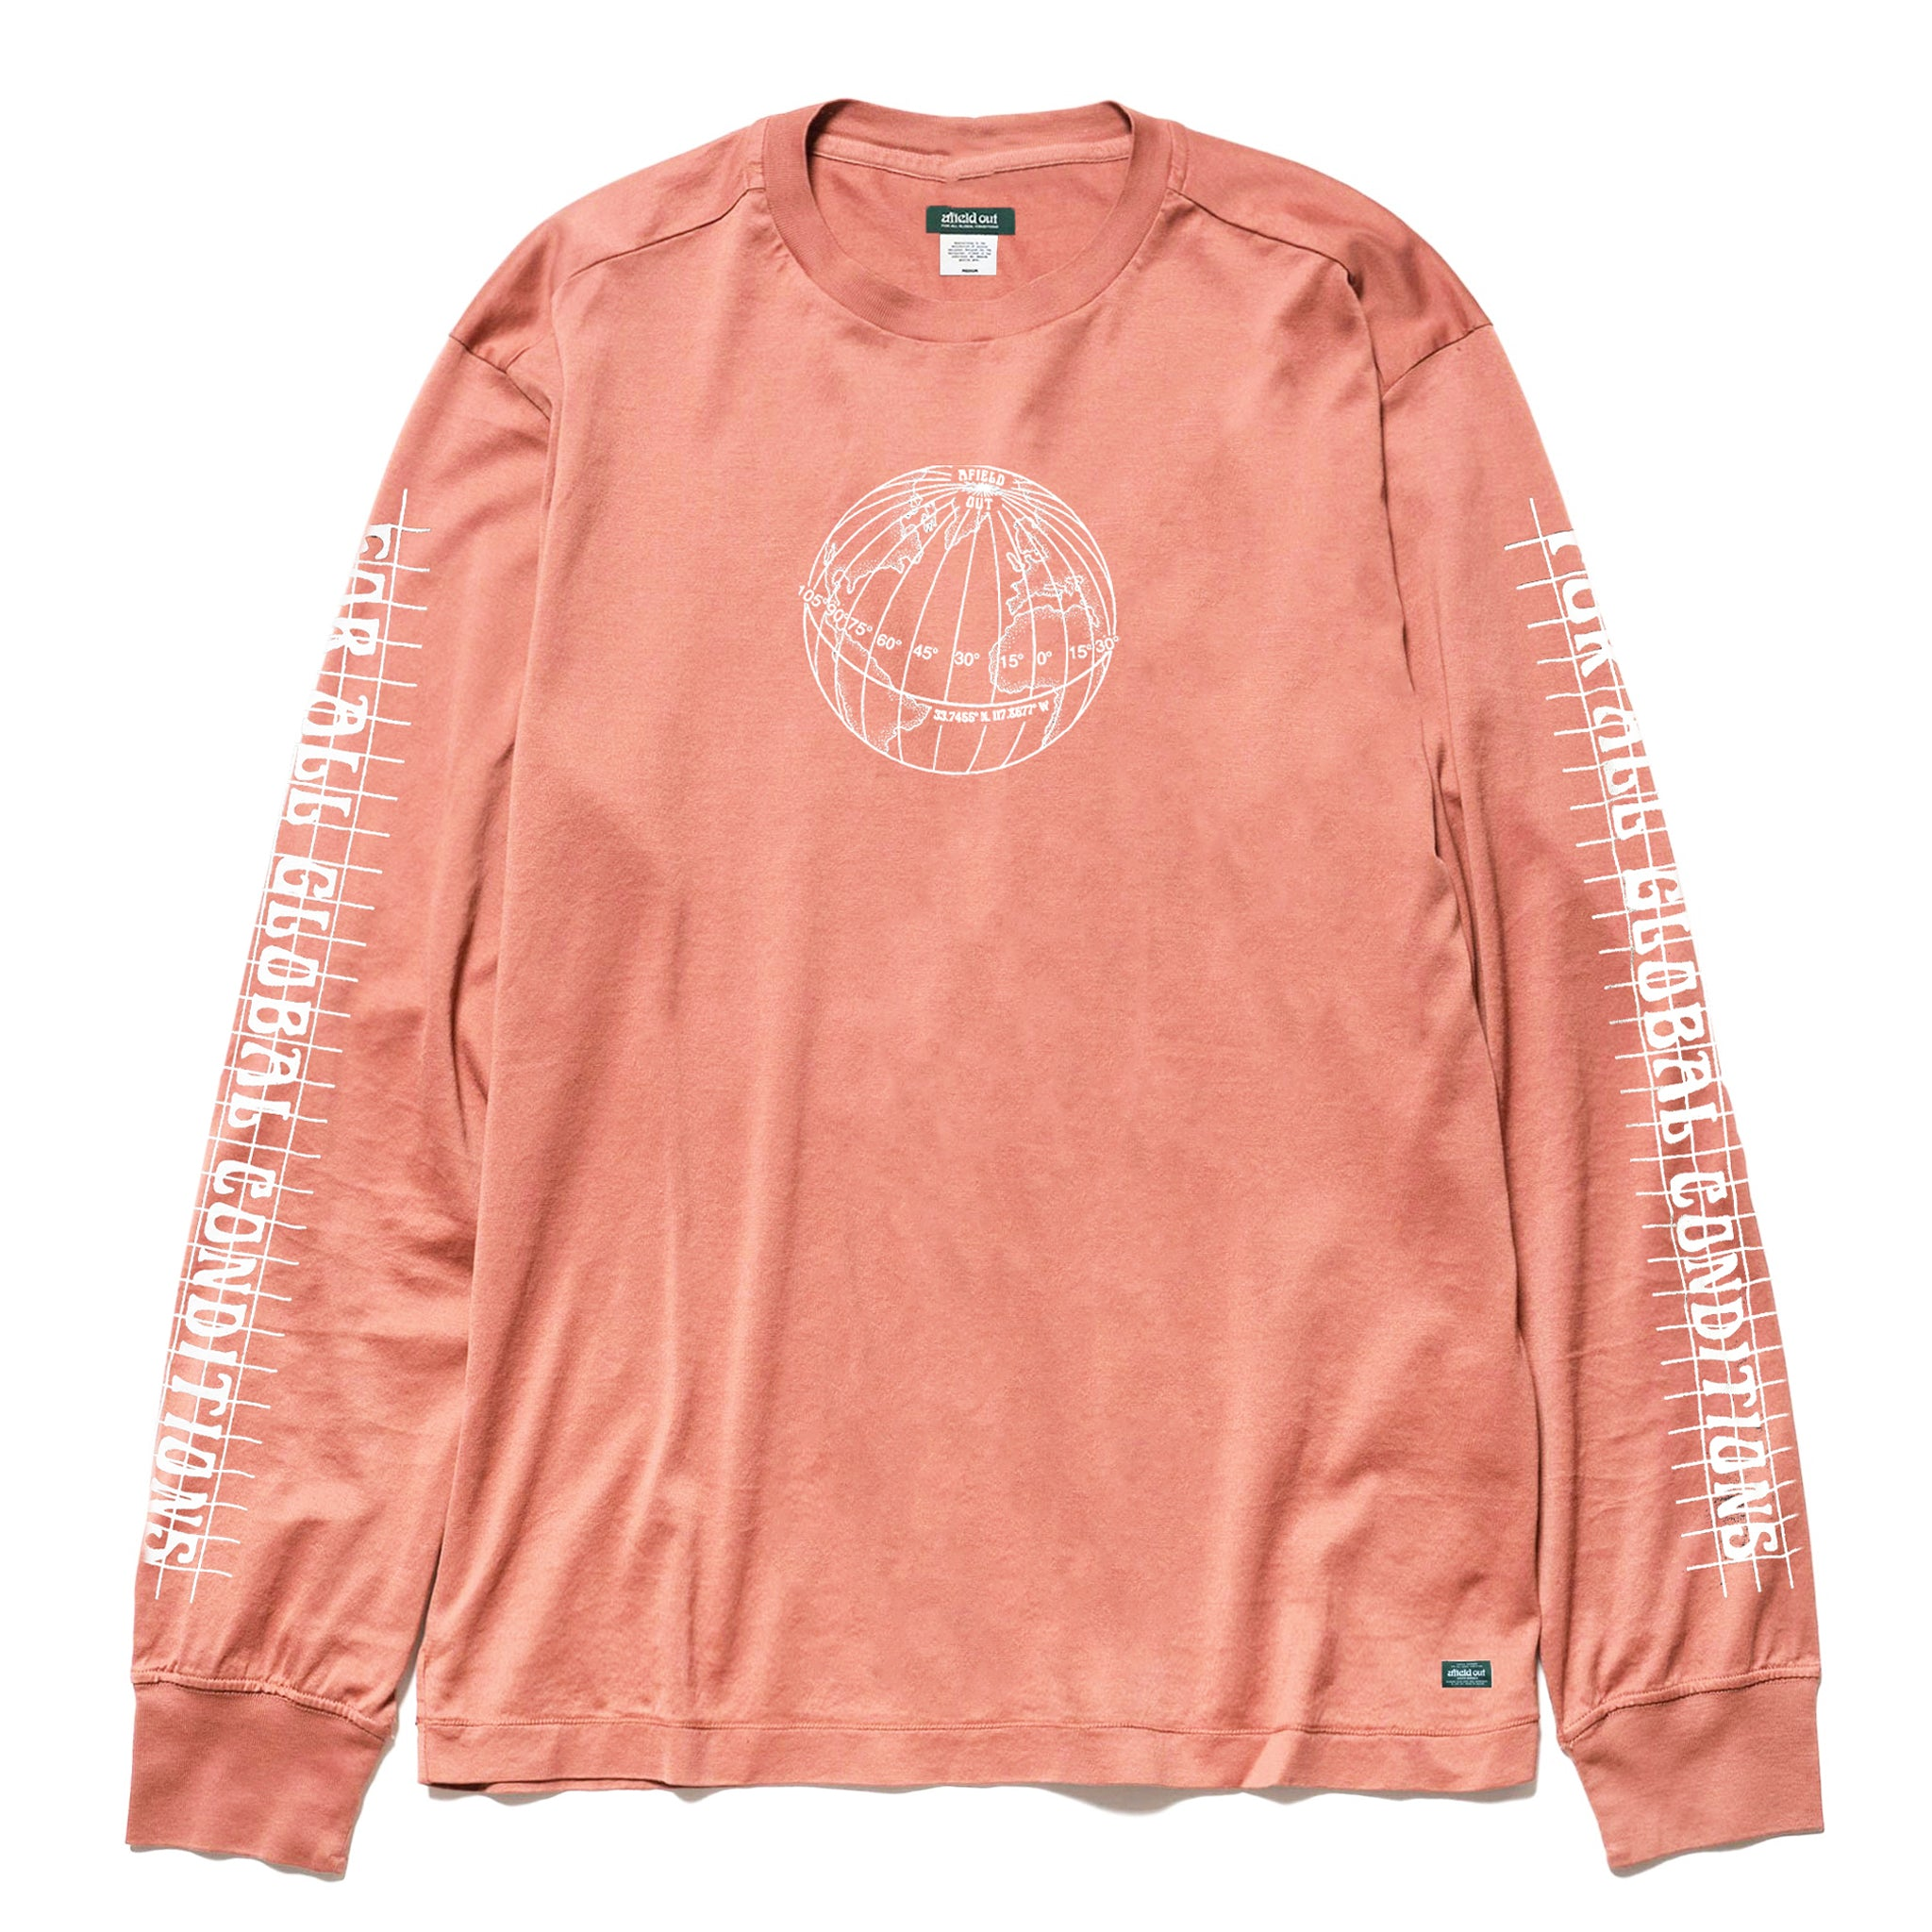 Equator L/S T-Shirt